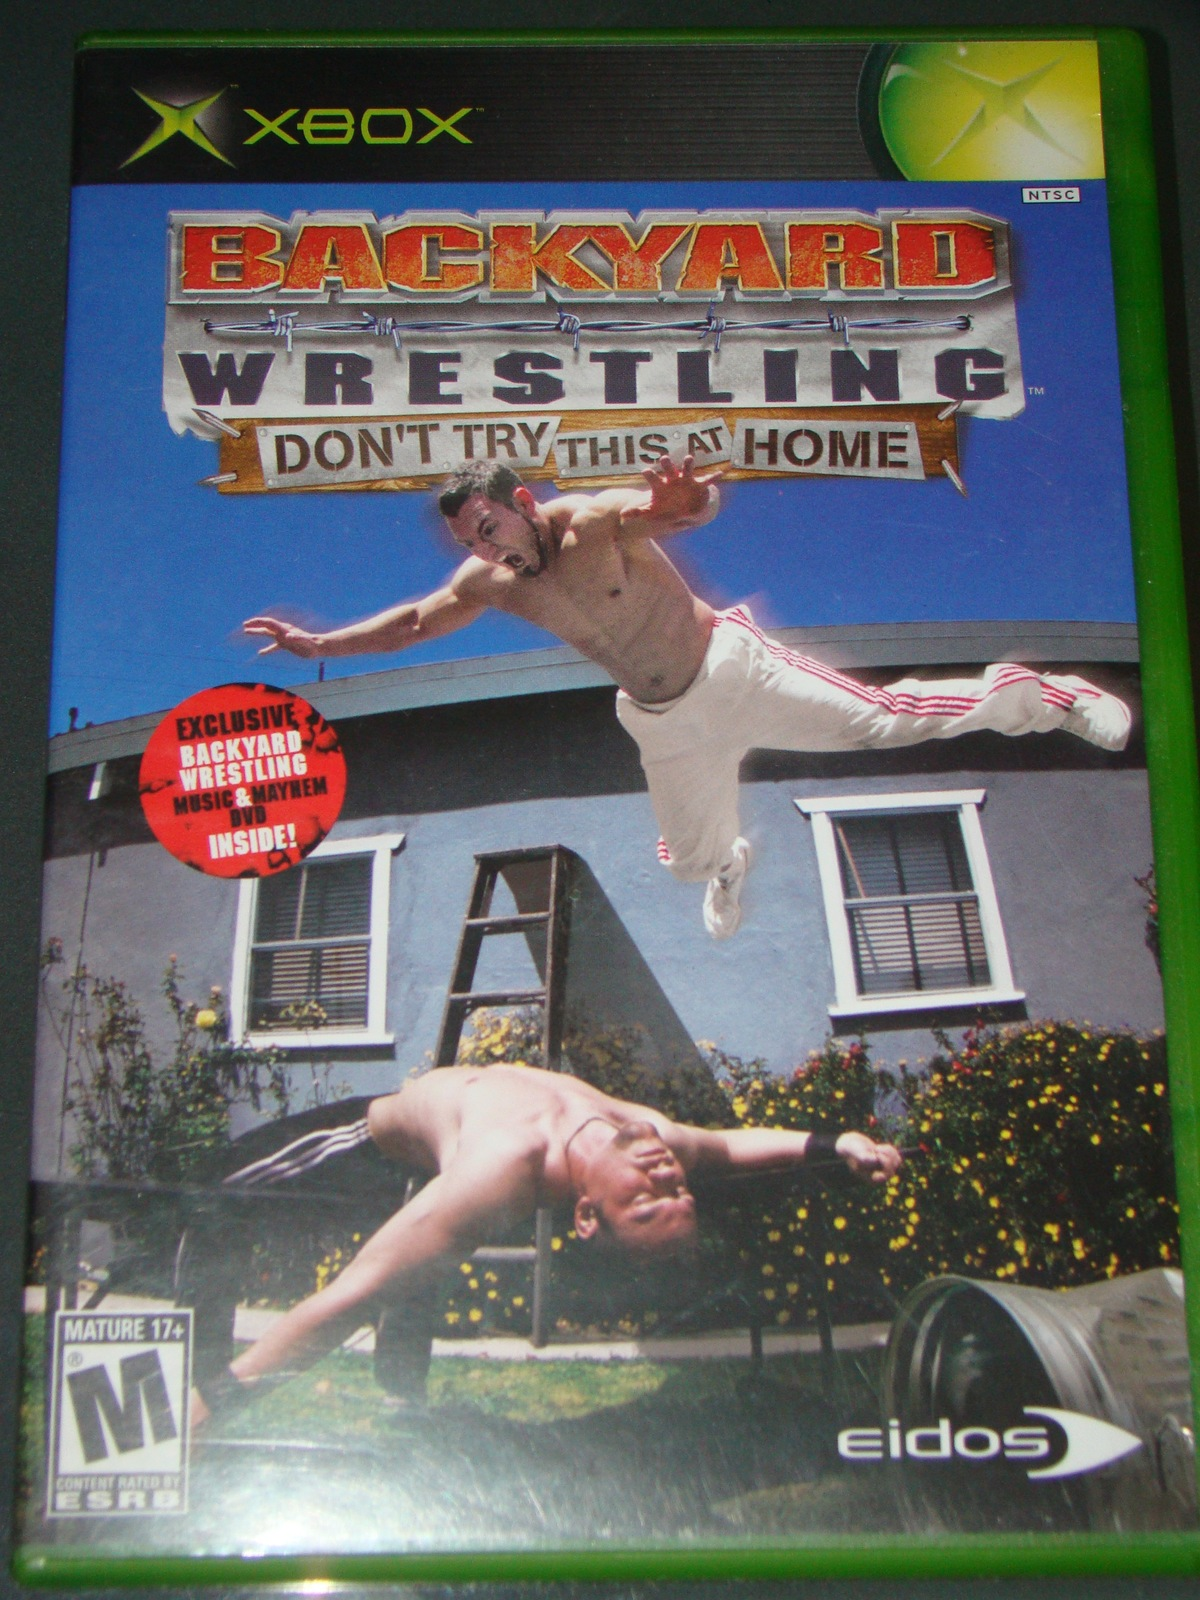 XBOX - BACK YARD WRESTLING - DONT TRY THIS AT HOME (Complete with Instructions) image 7